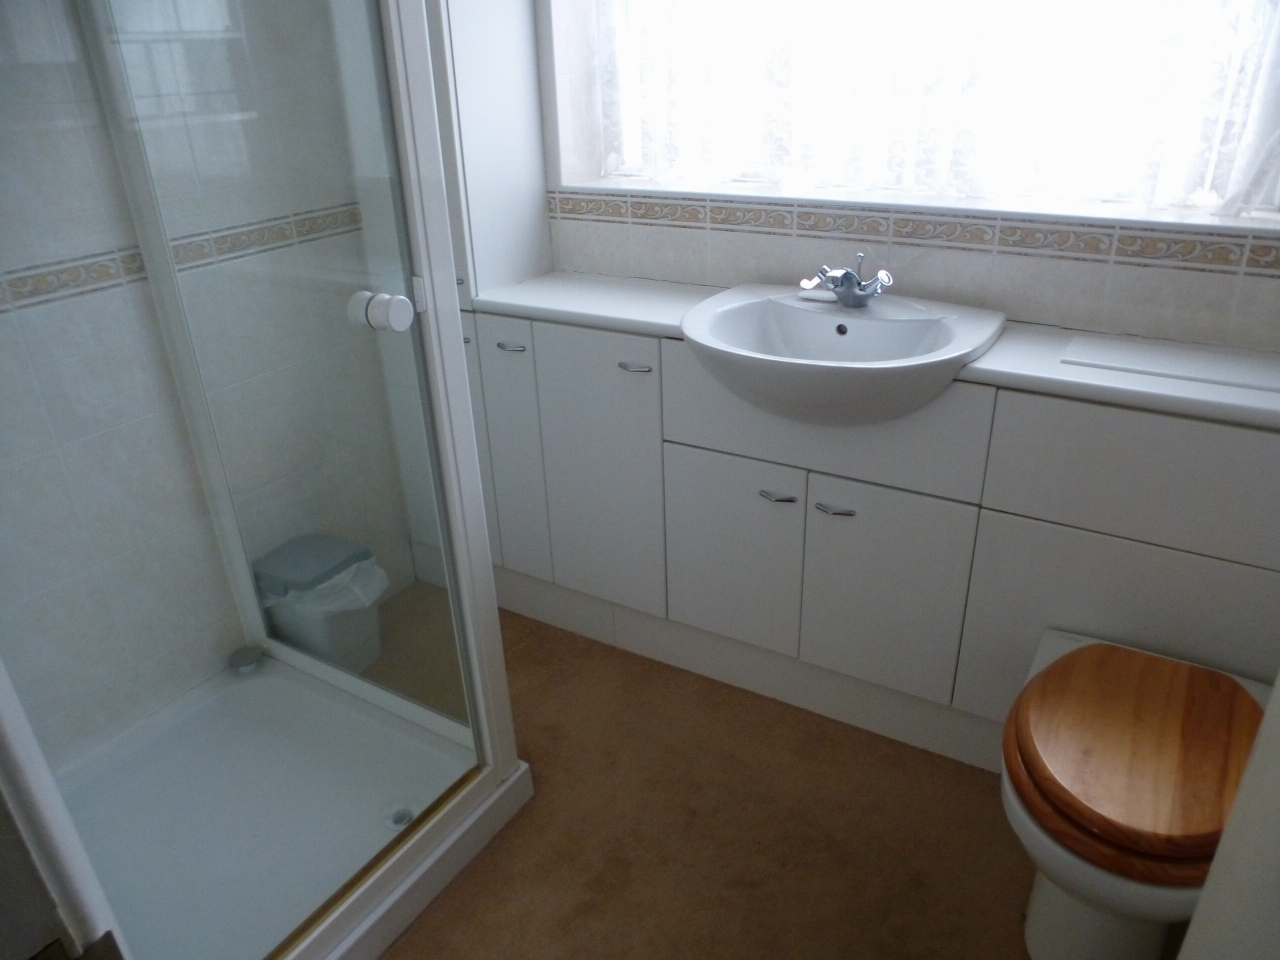 Image 1 of 2 of BATHROOM, on Accommodation Comprising for